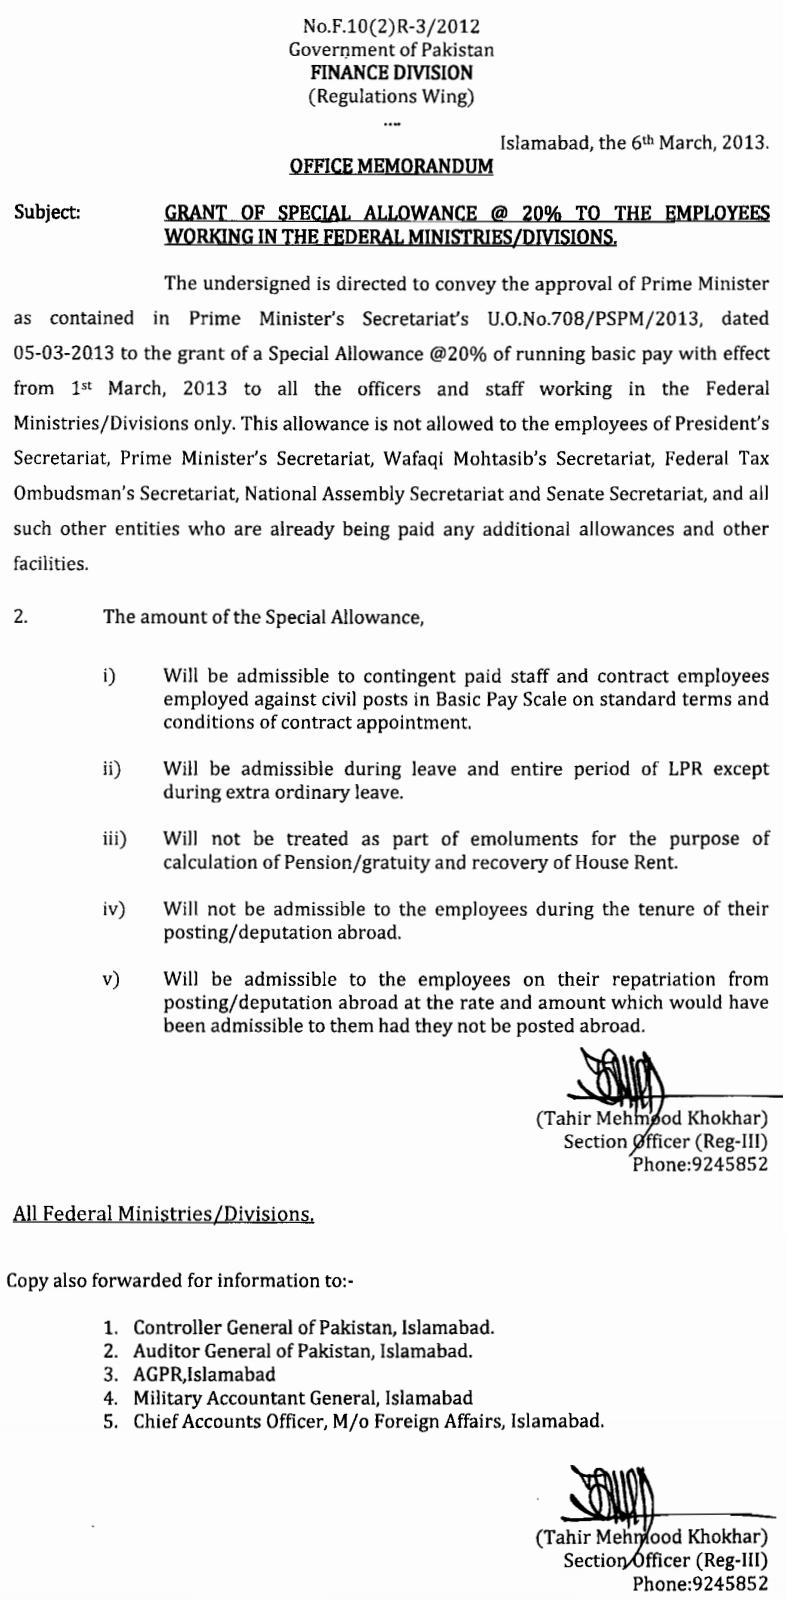 Finance Division notification special allowance for employees of federal ministries divisions w.e.f March 2013